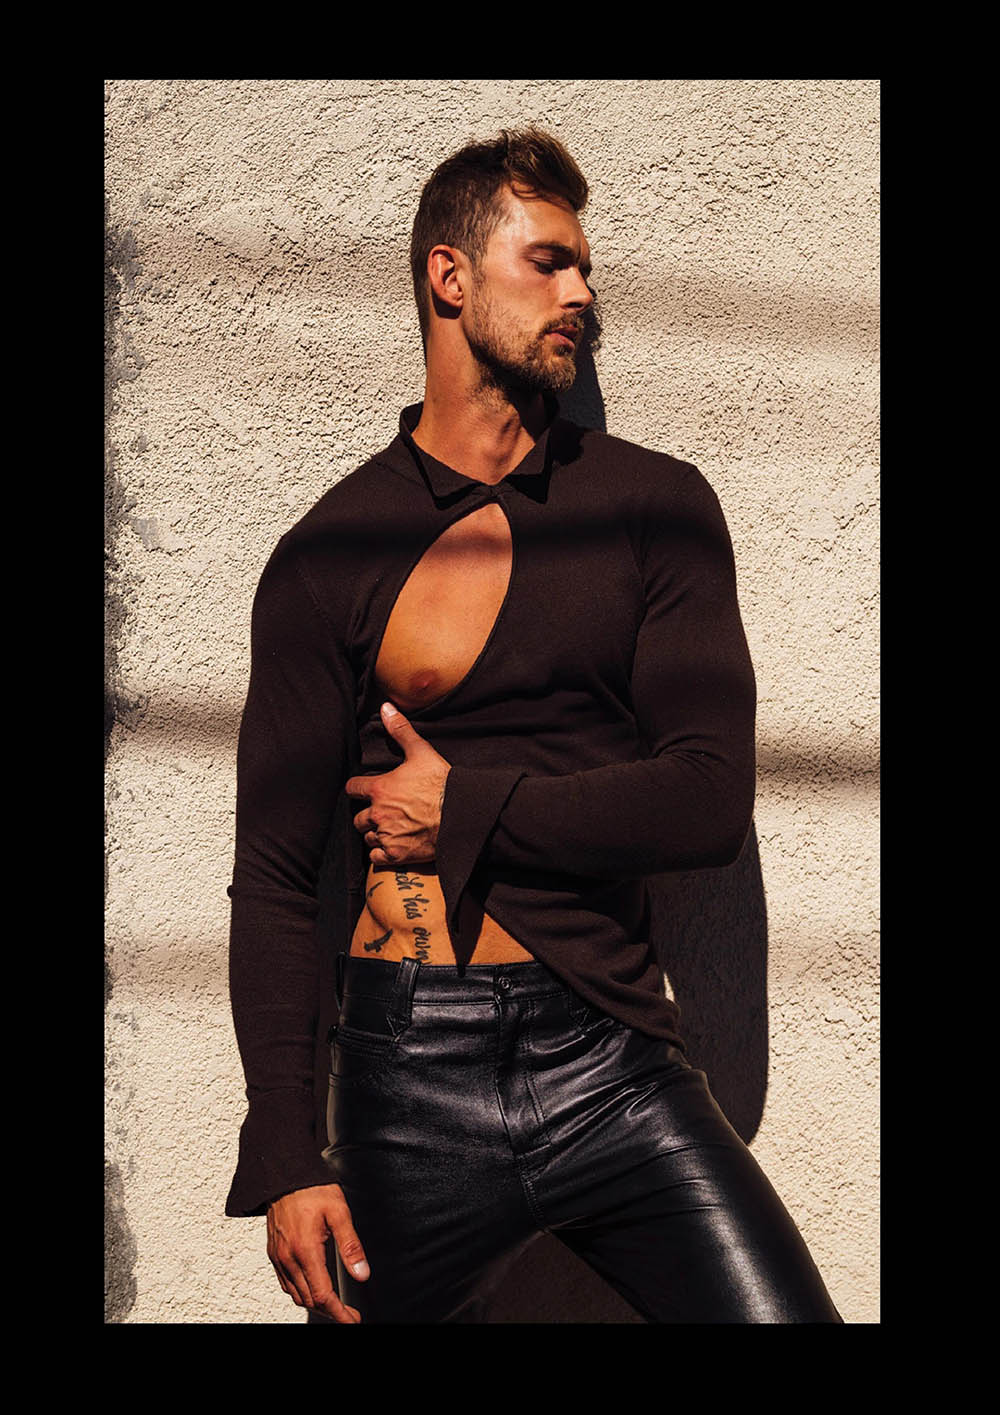 Christian Hogue by Taylor Miller for Attitude Magazine Summer 2020